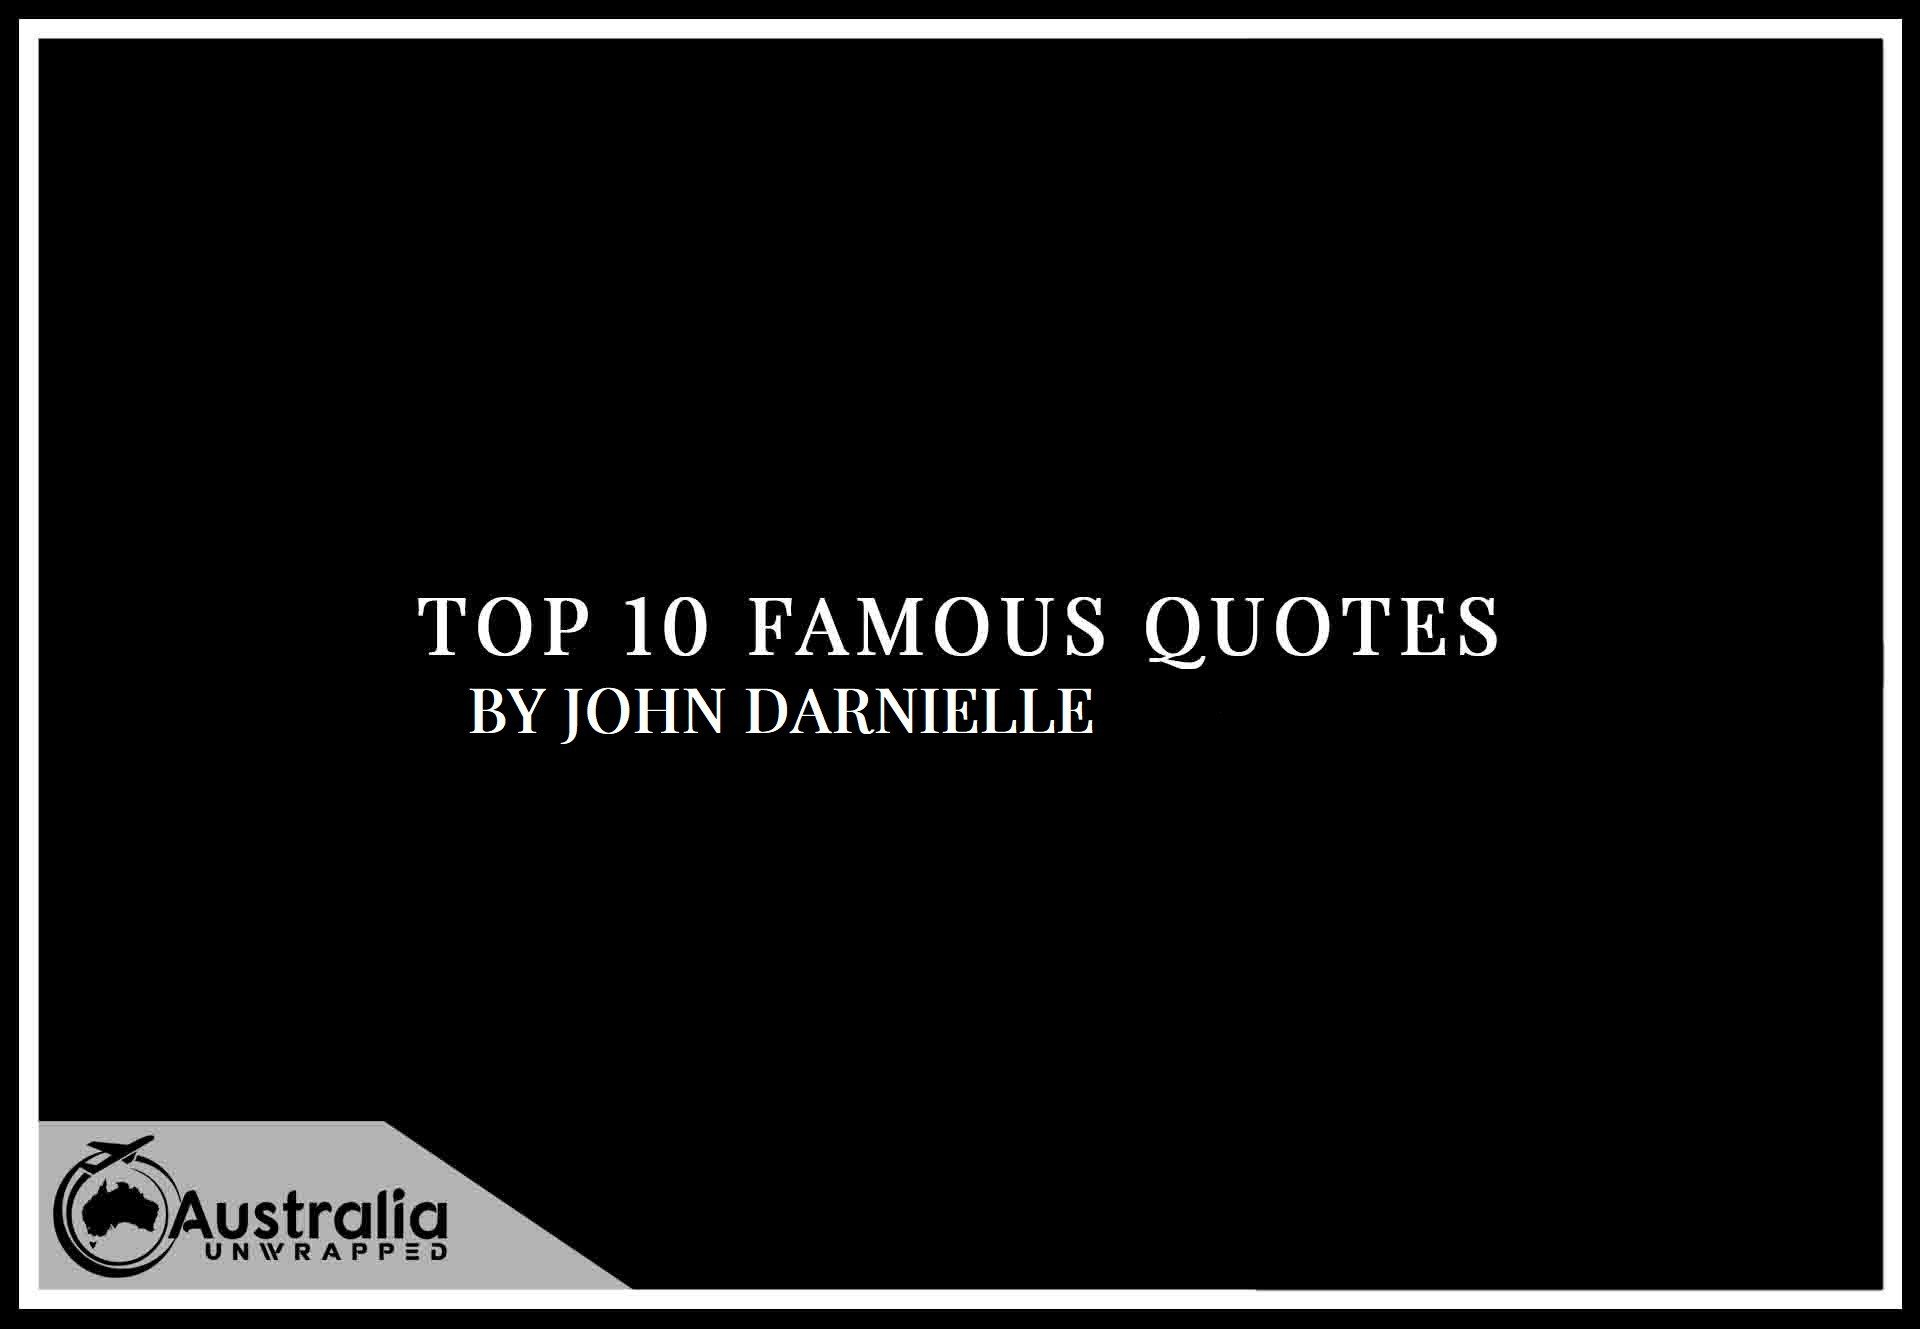 Top 10 Famous Quotes by Author John Darnielle